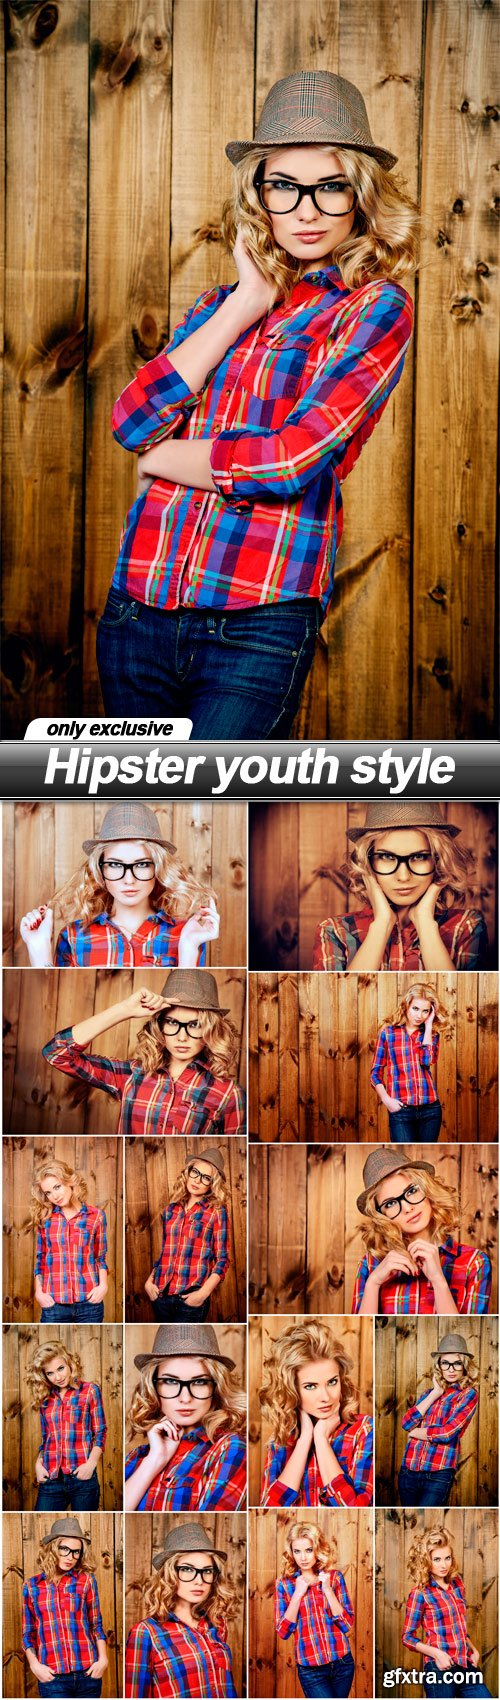 Hipster youth style - 15 UHQ JPEG